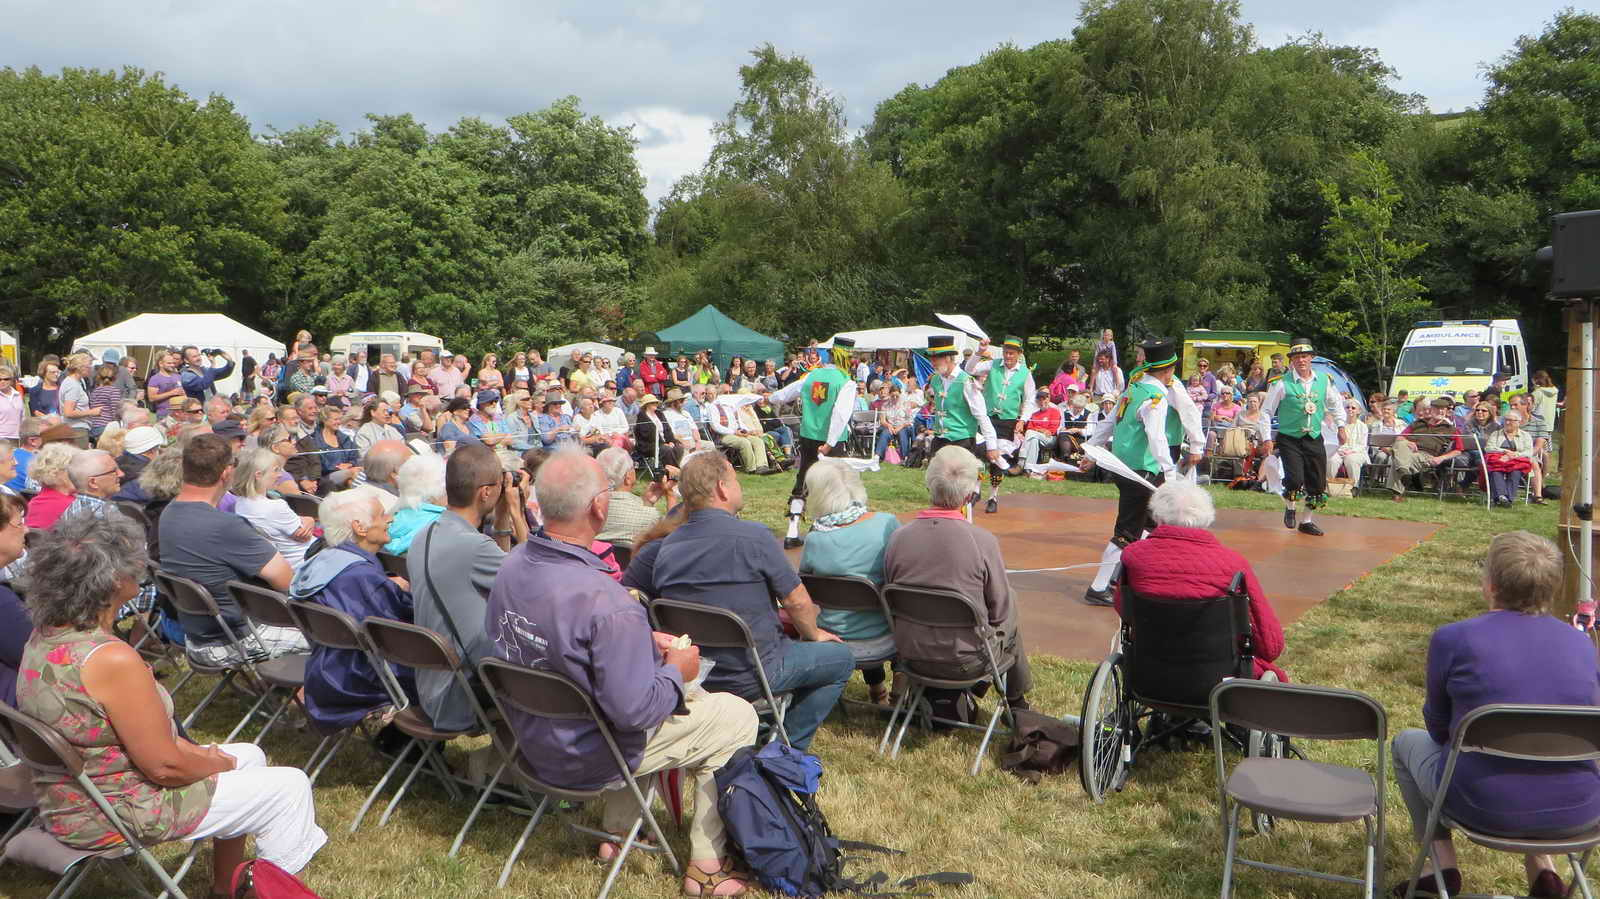 A view of the early morning crowd watching Morris dancers.